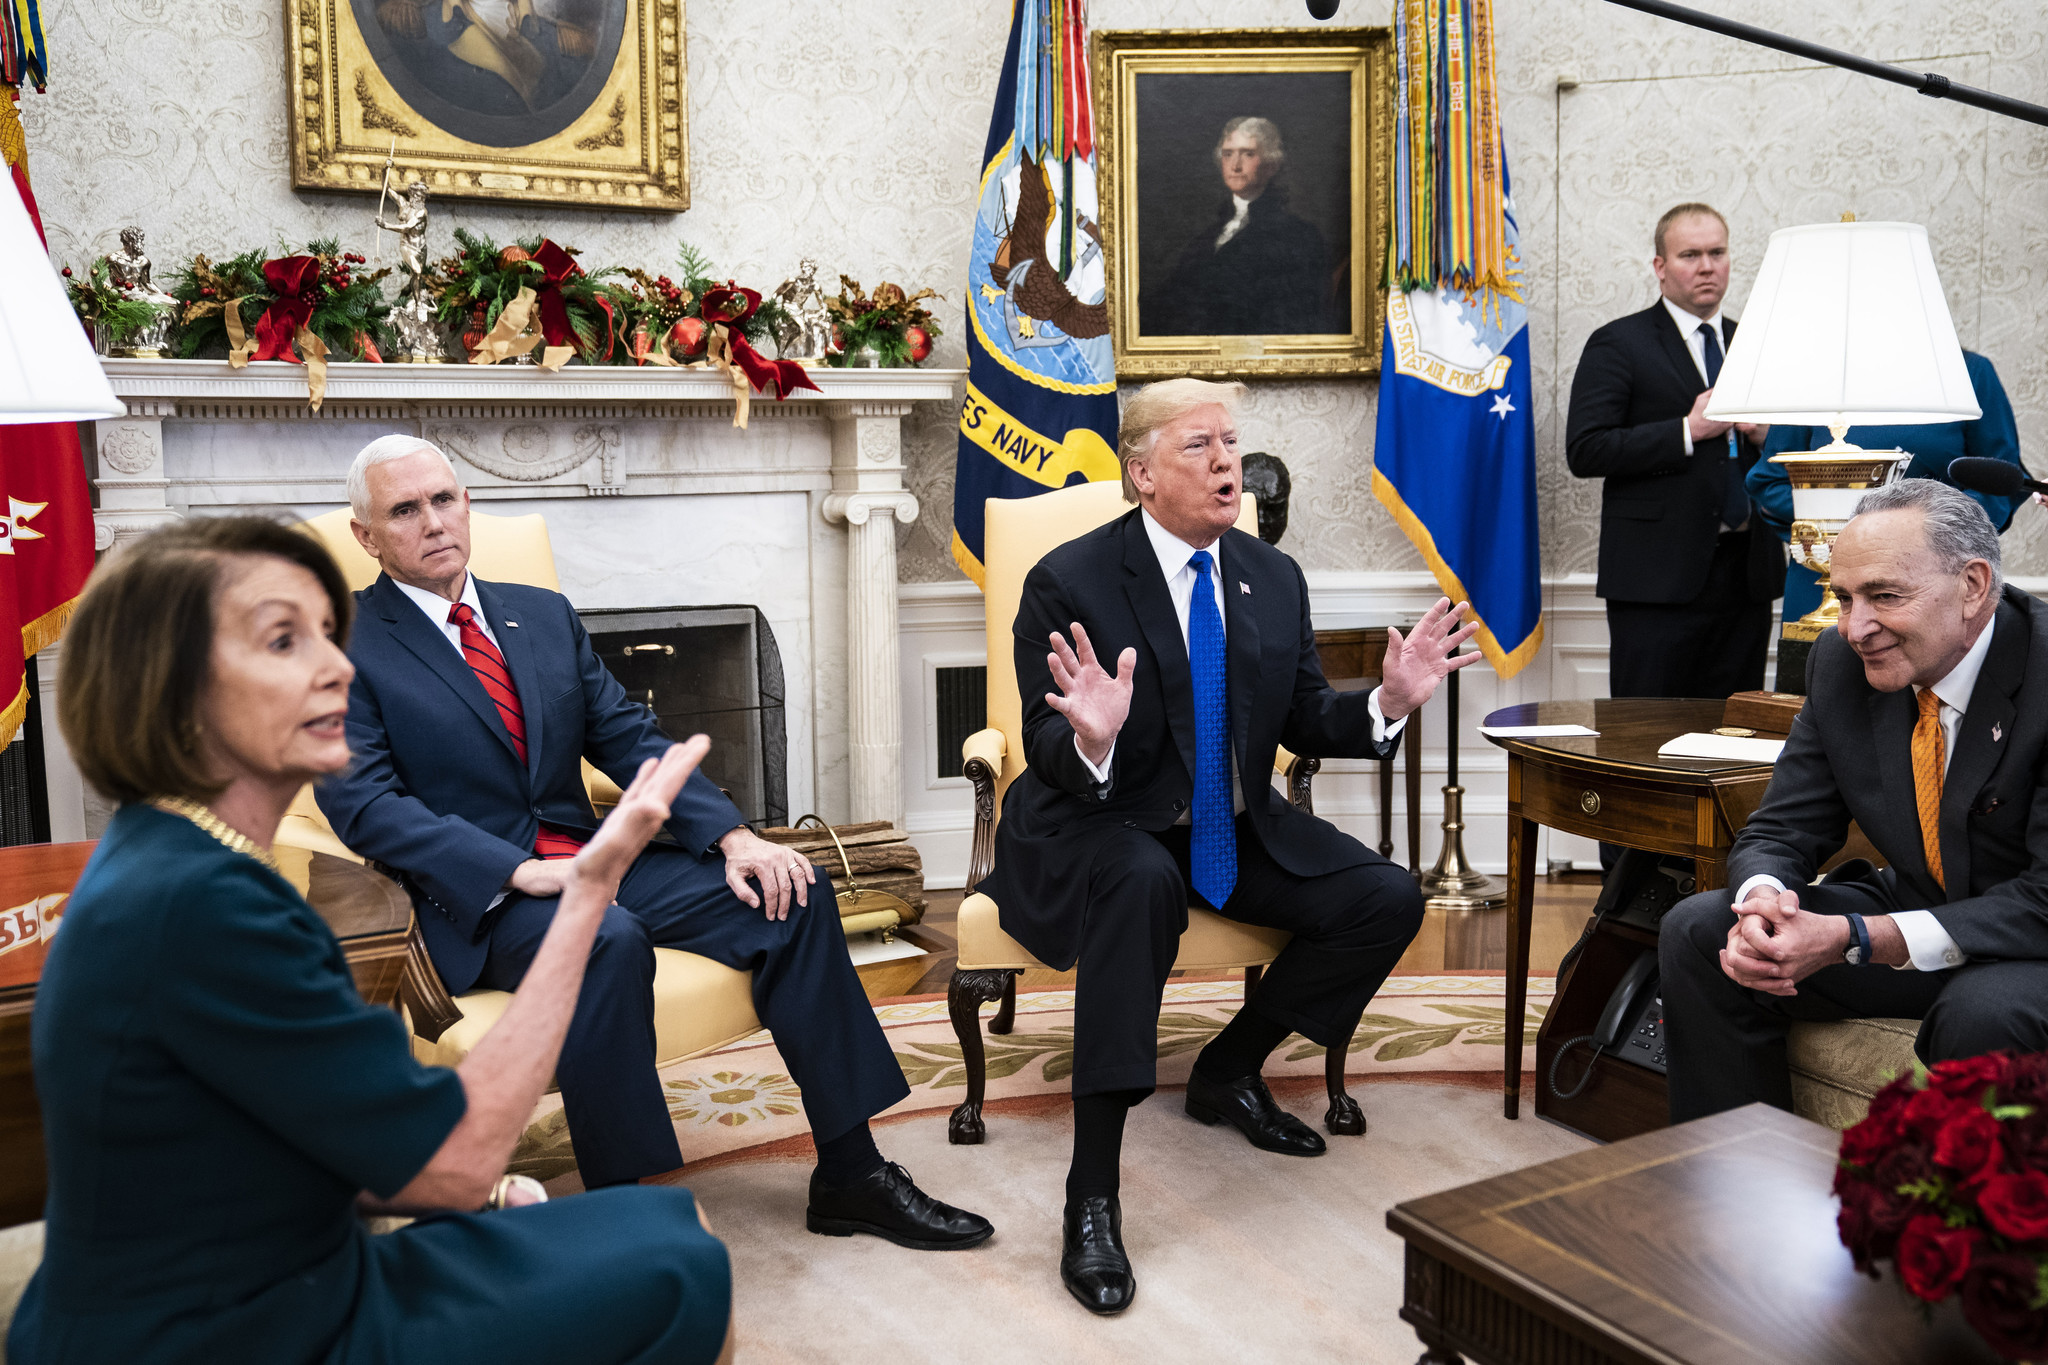 Border wall negotiations devolve into on-camera shouting match between President Trump, Nancy Pelosi and Chuck Schumer